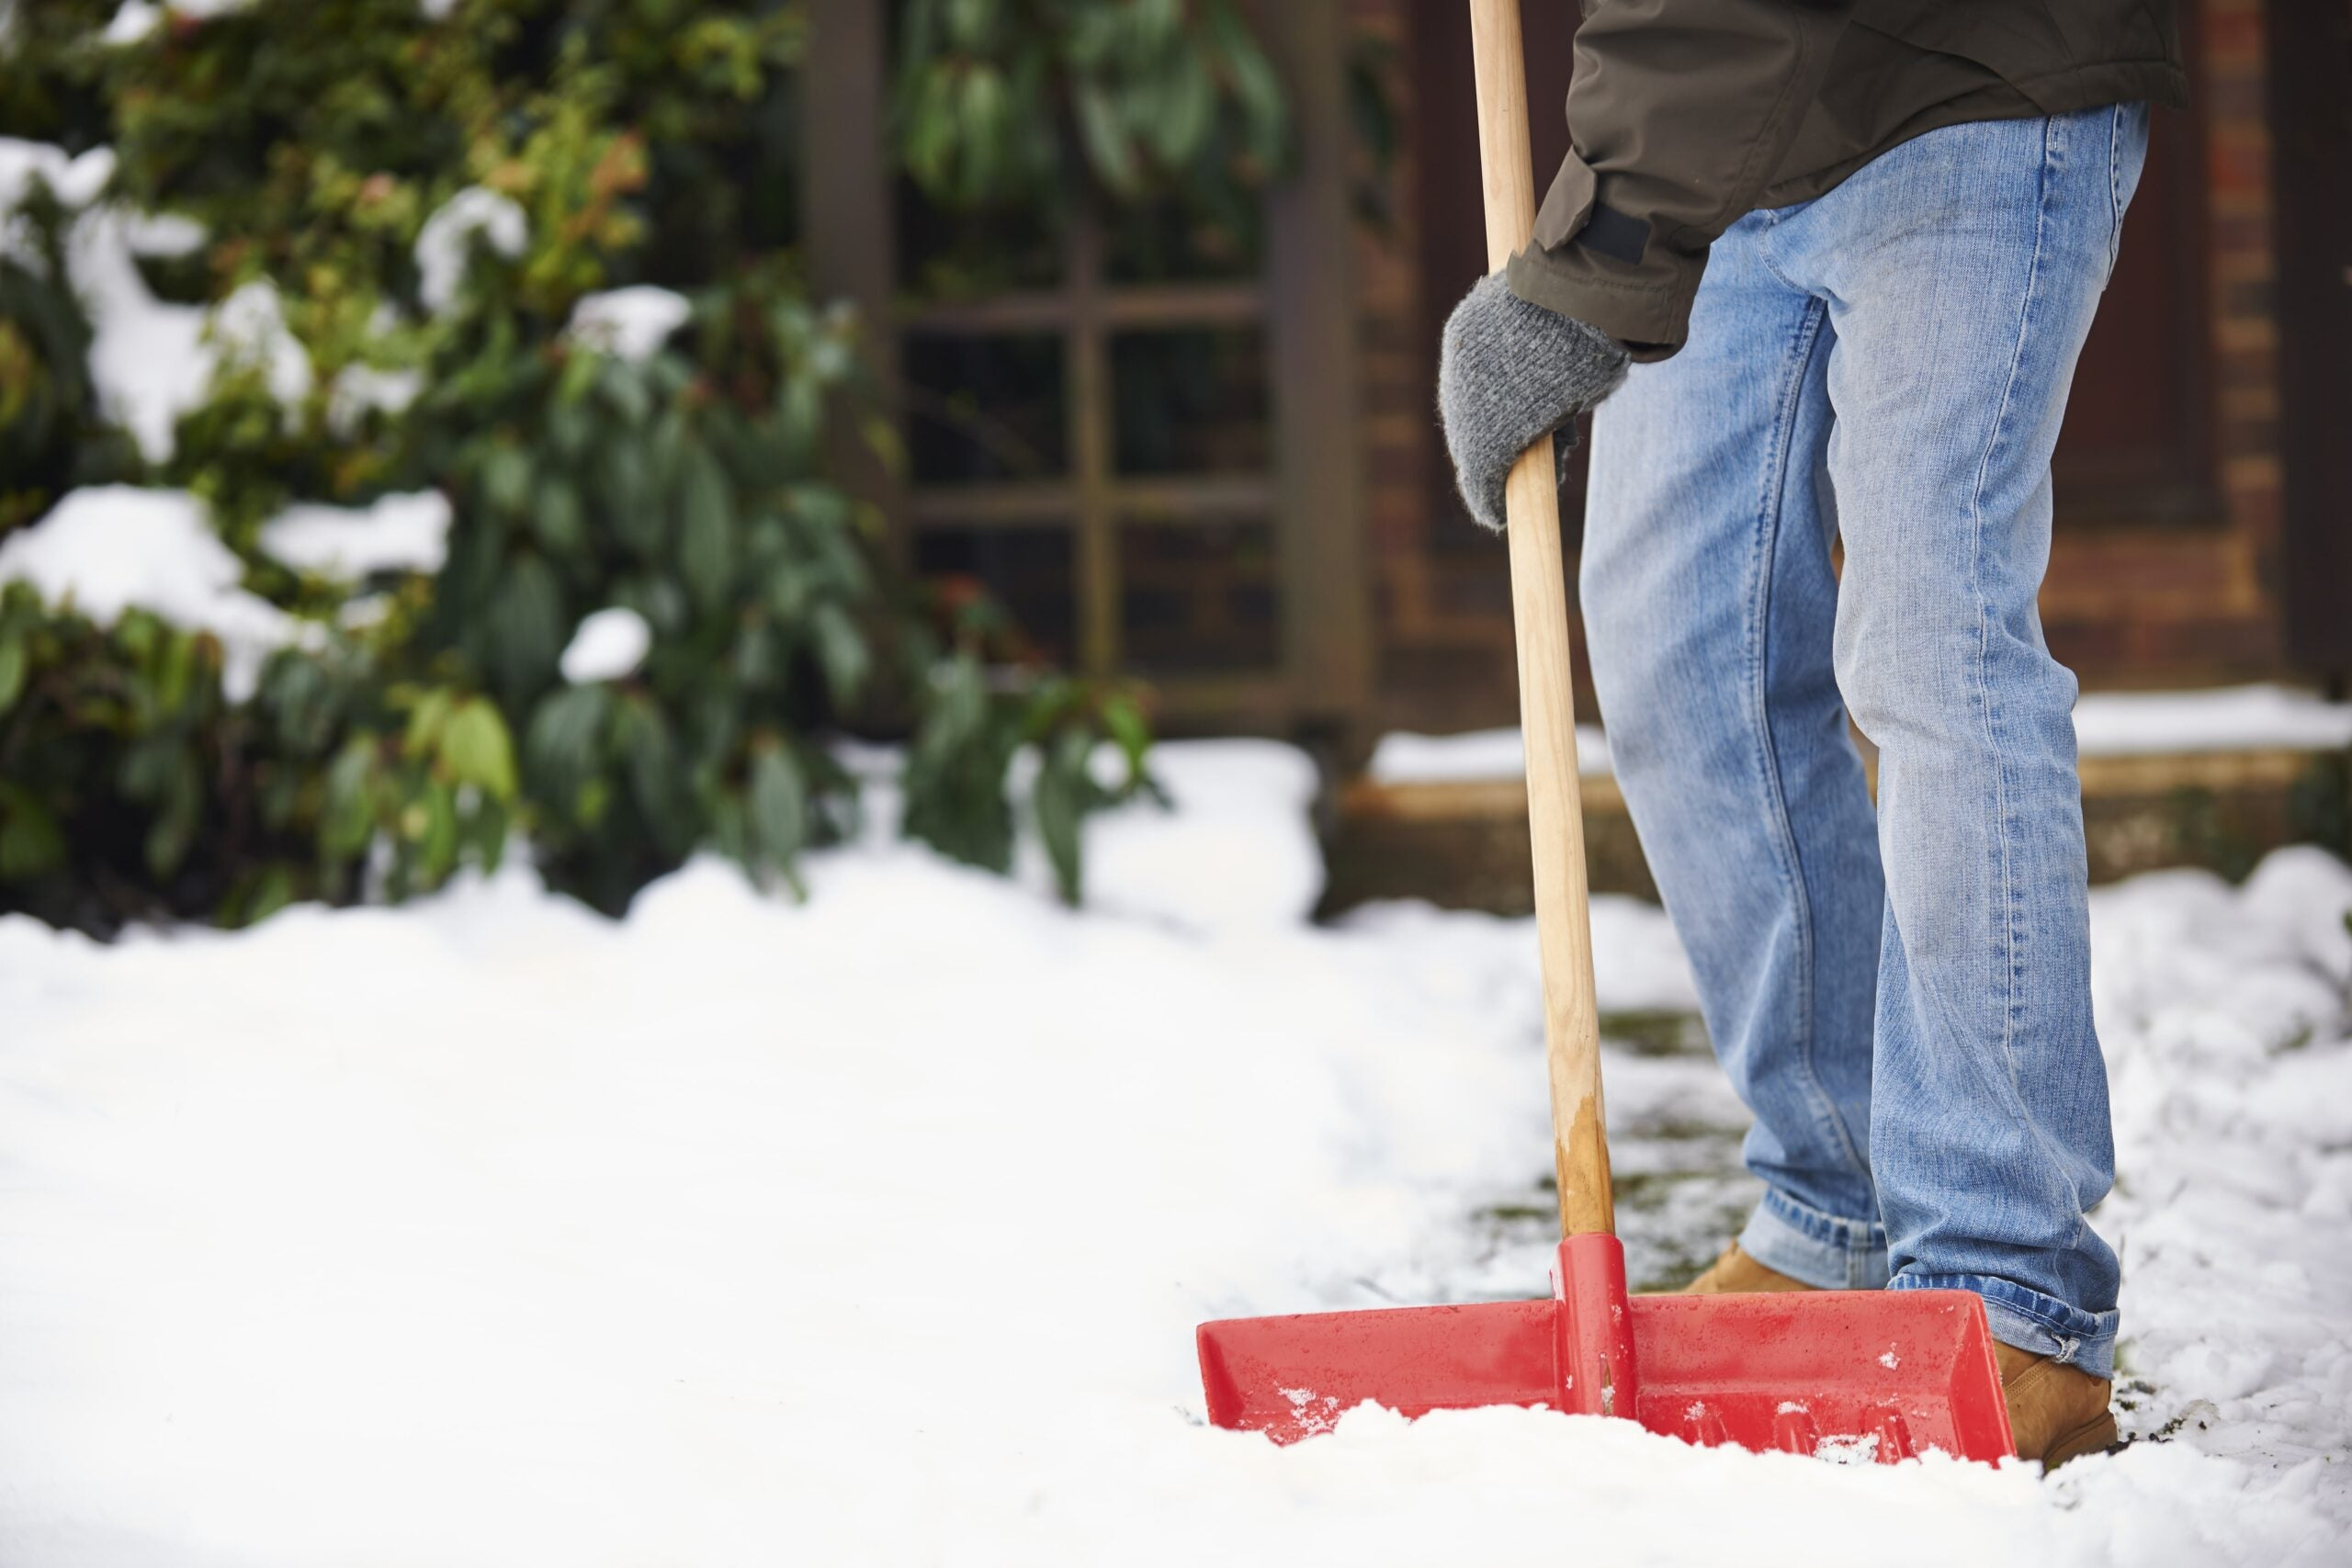 Shoveling Snow: Do It Safely With These 10 Tips